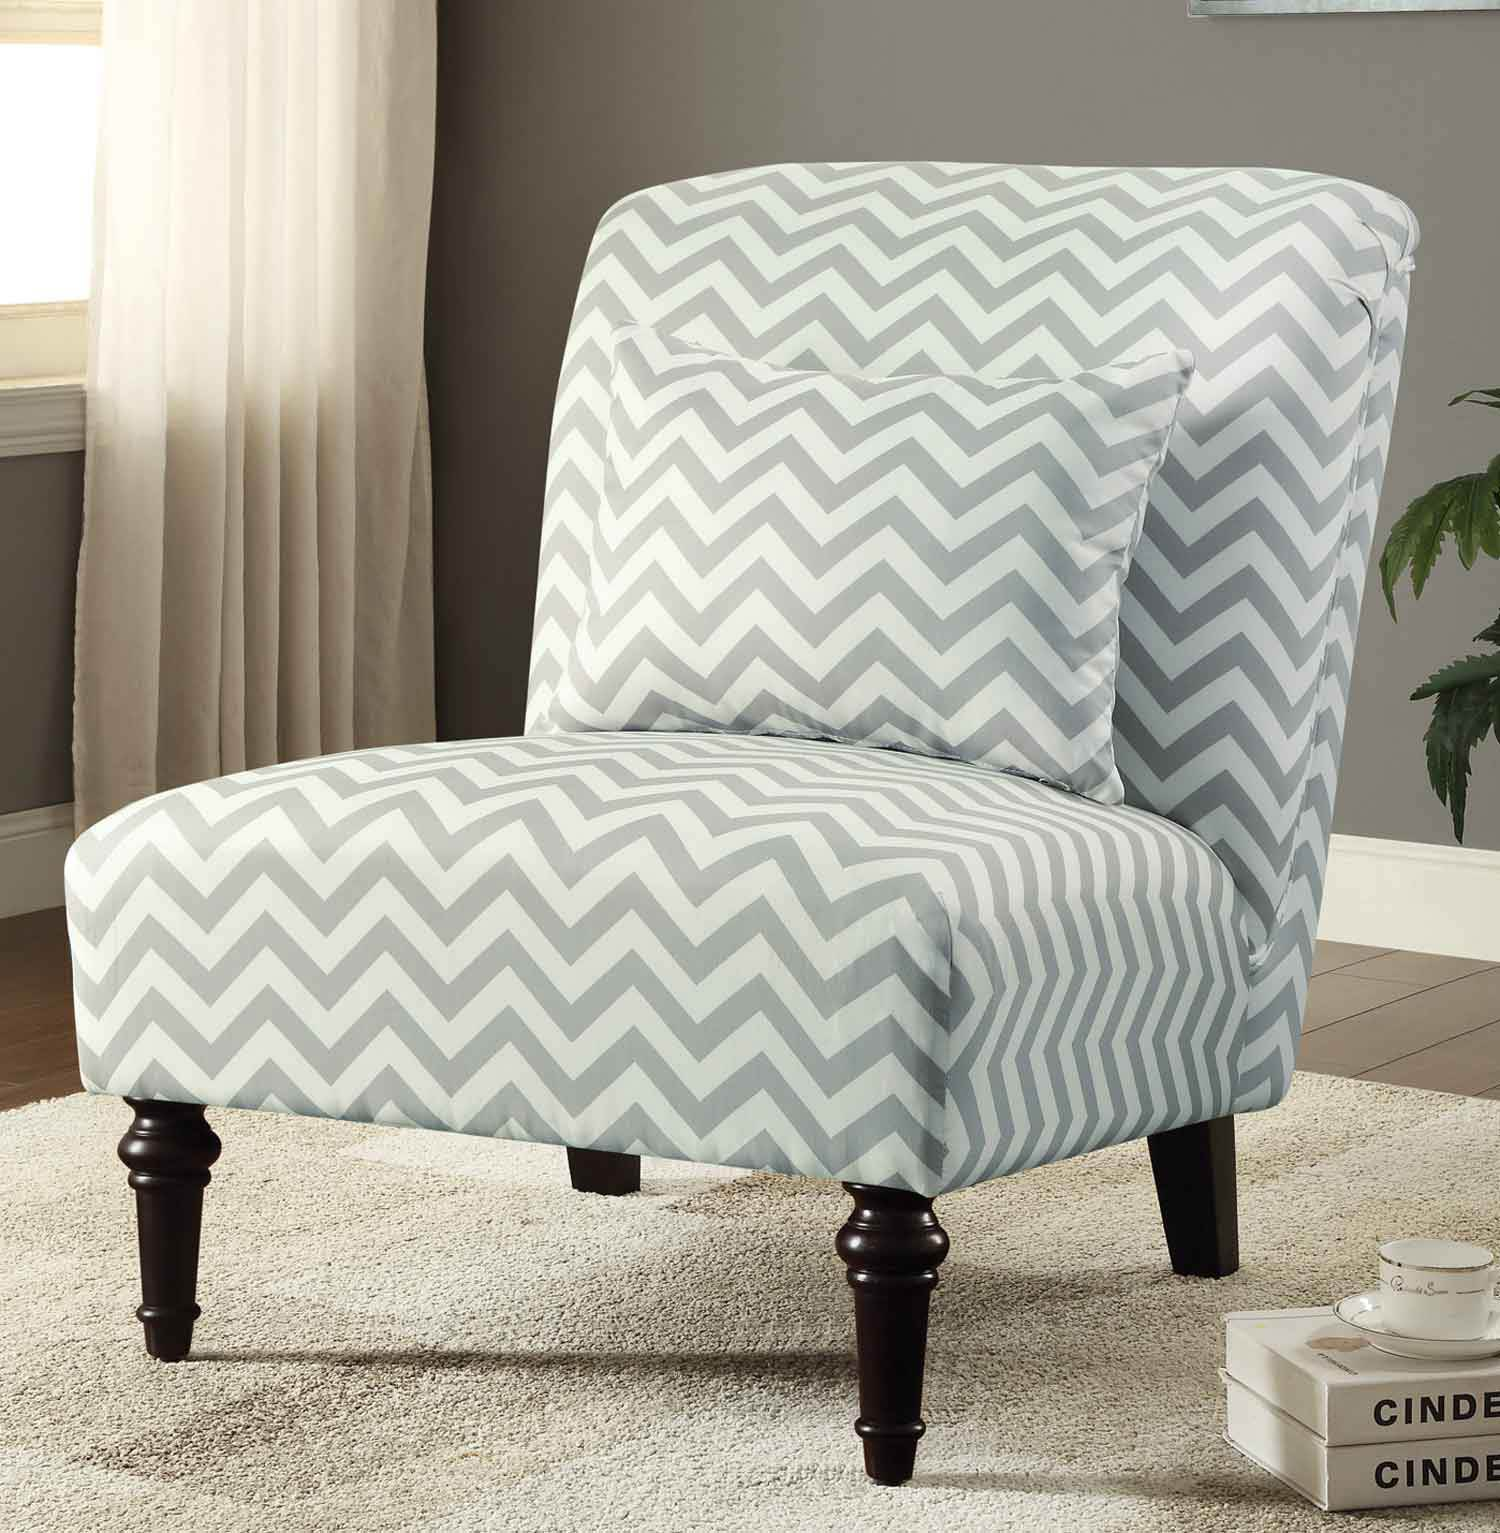 902018 Accent Chair - White/Grey Chevron